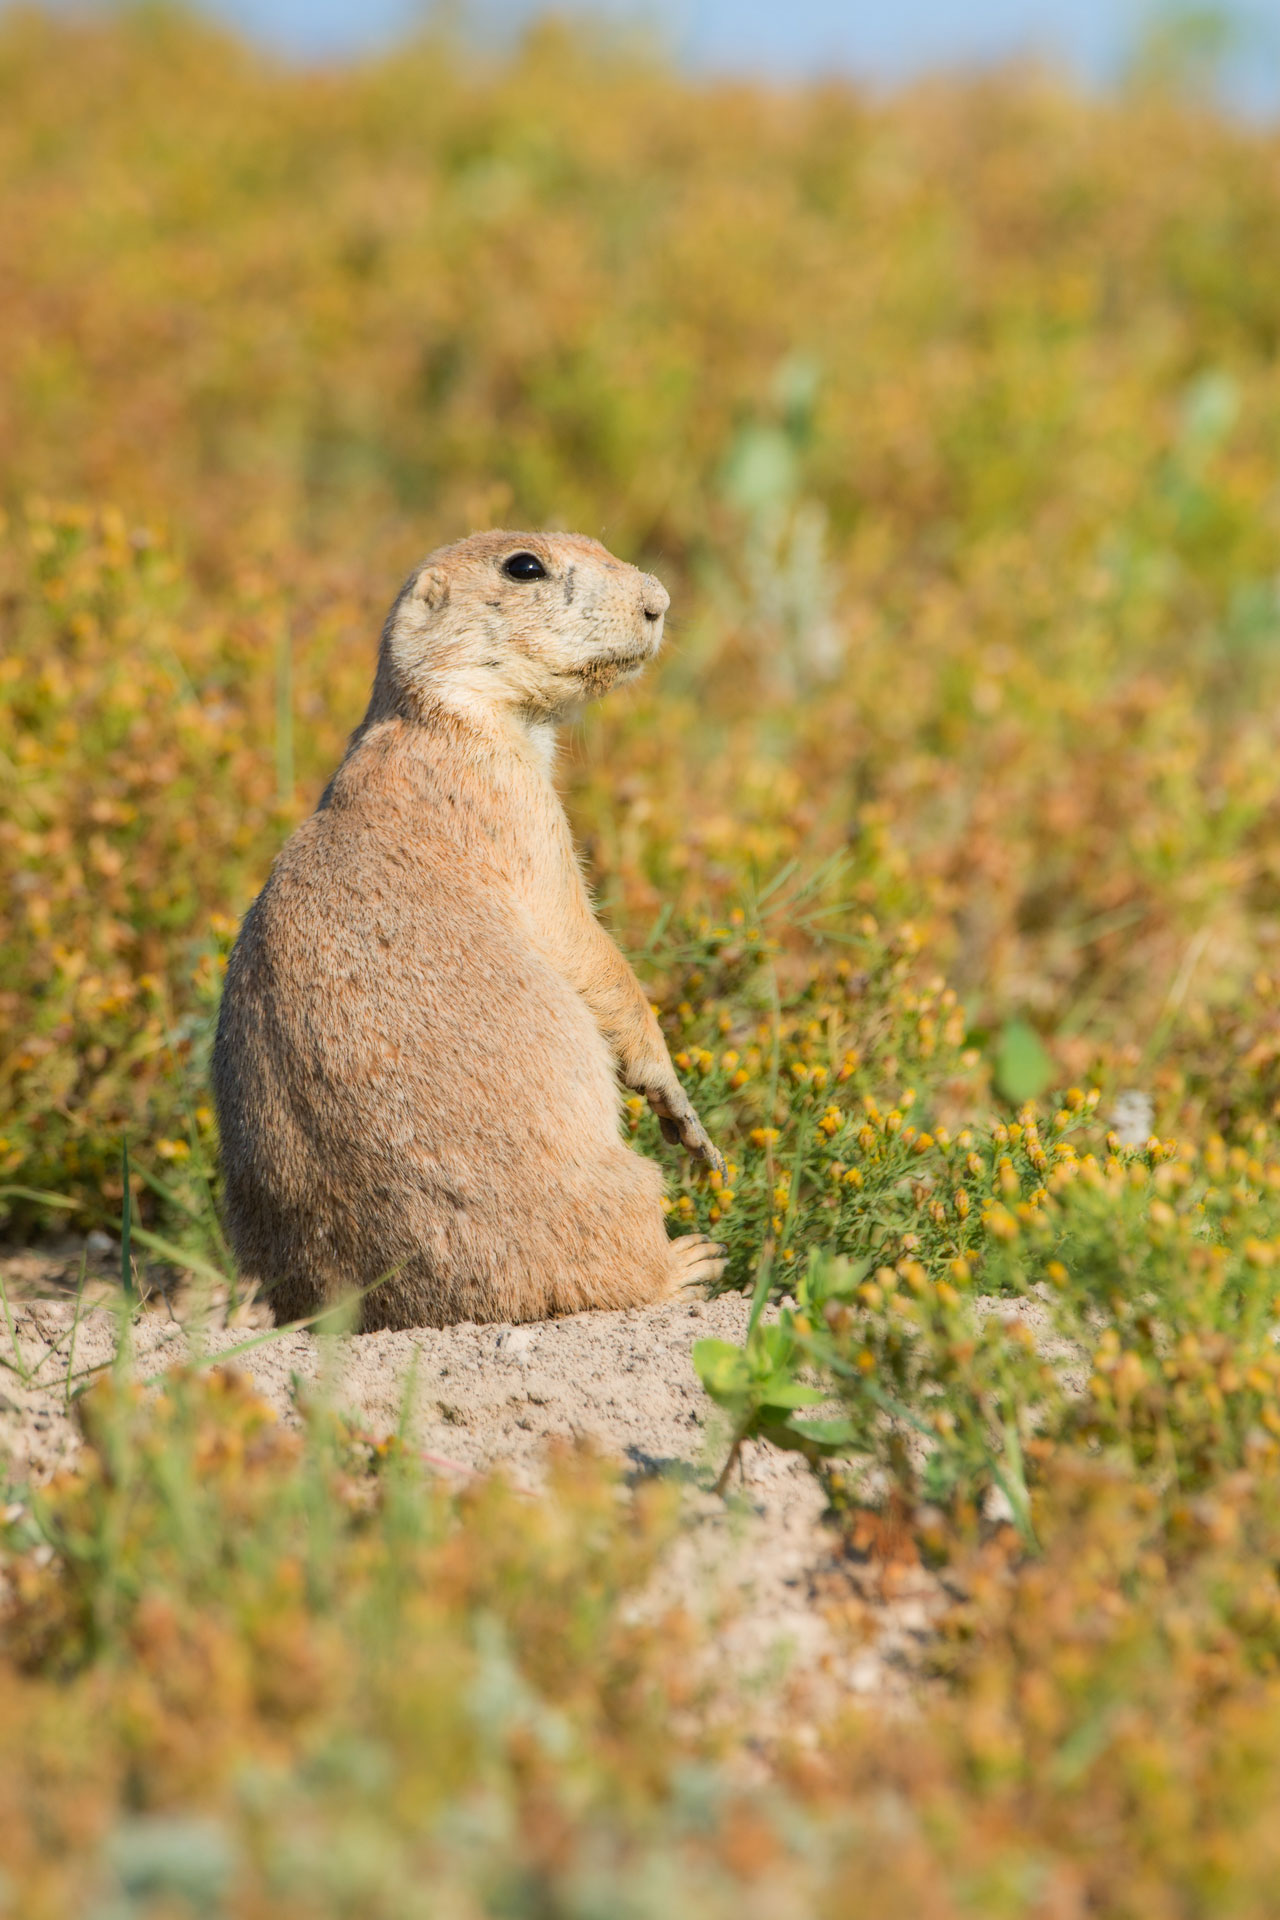 Prairie Dog ( Cynomys ludovicianus ) surveying the landscape - Wind Cave NP, SD  Nikon D7200 + Nikon 200-400mm f4.0 VR